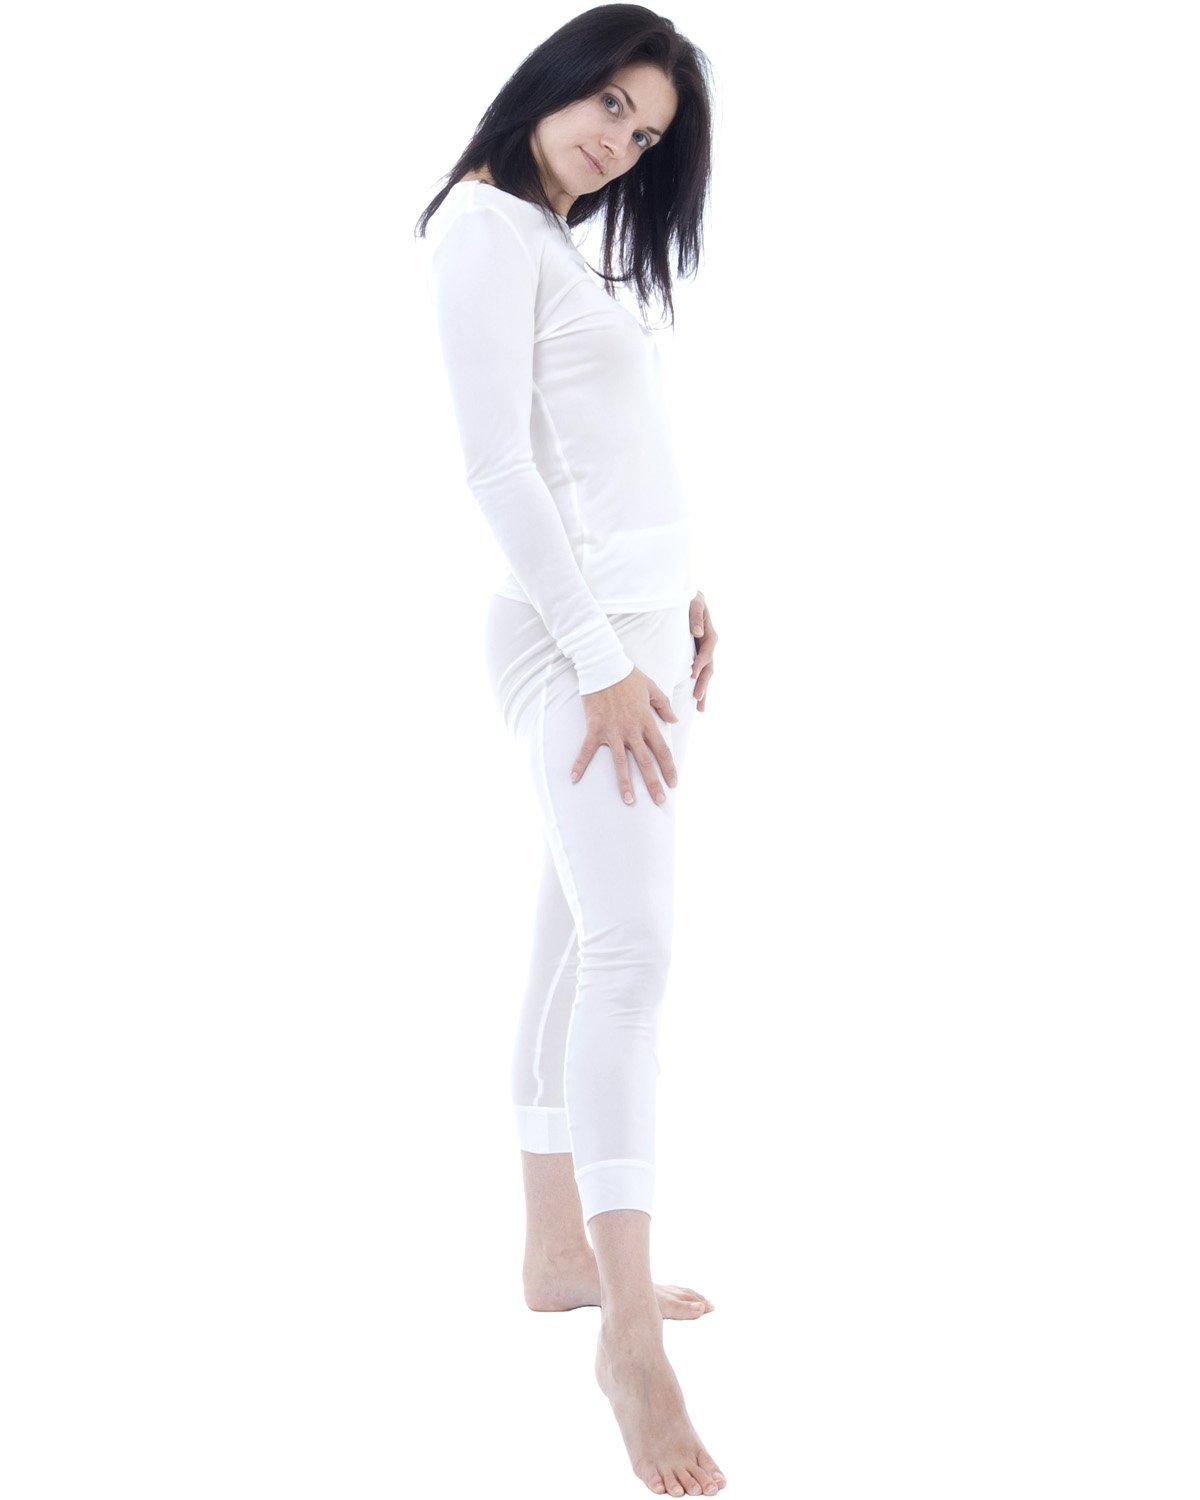 Silk thermal long john and top set - size: XL - colour: ivory white